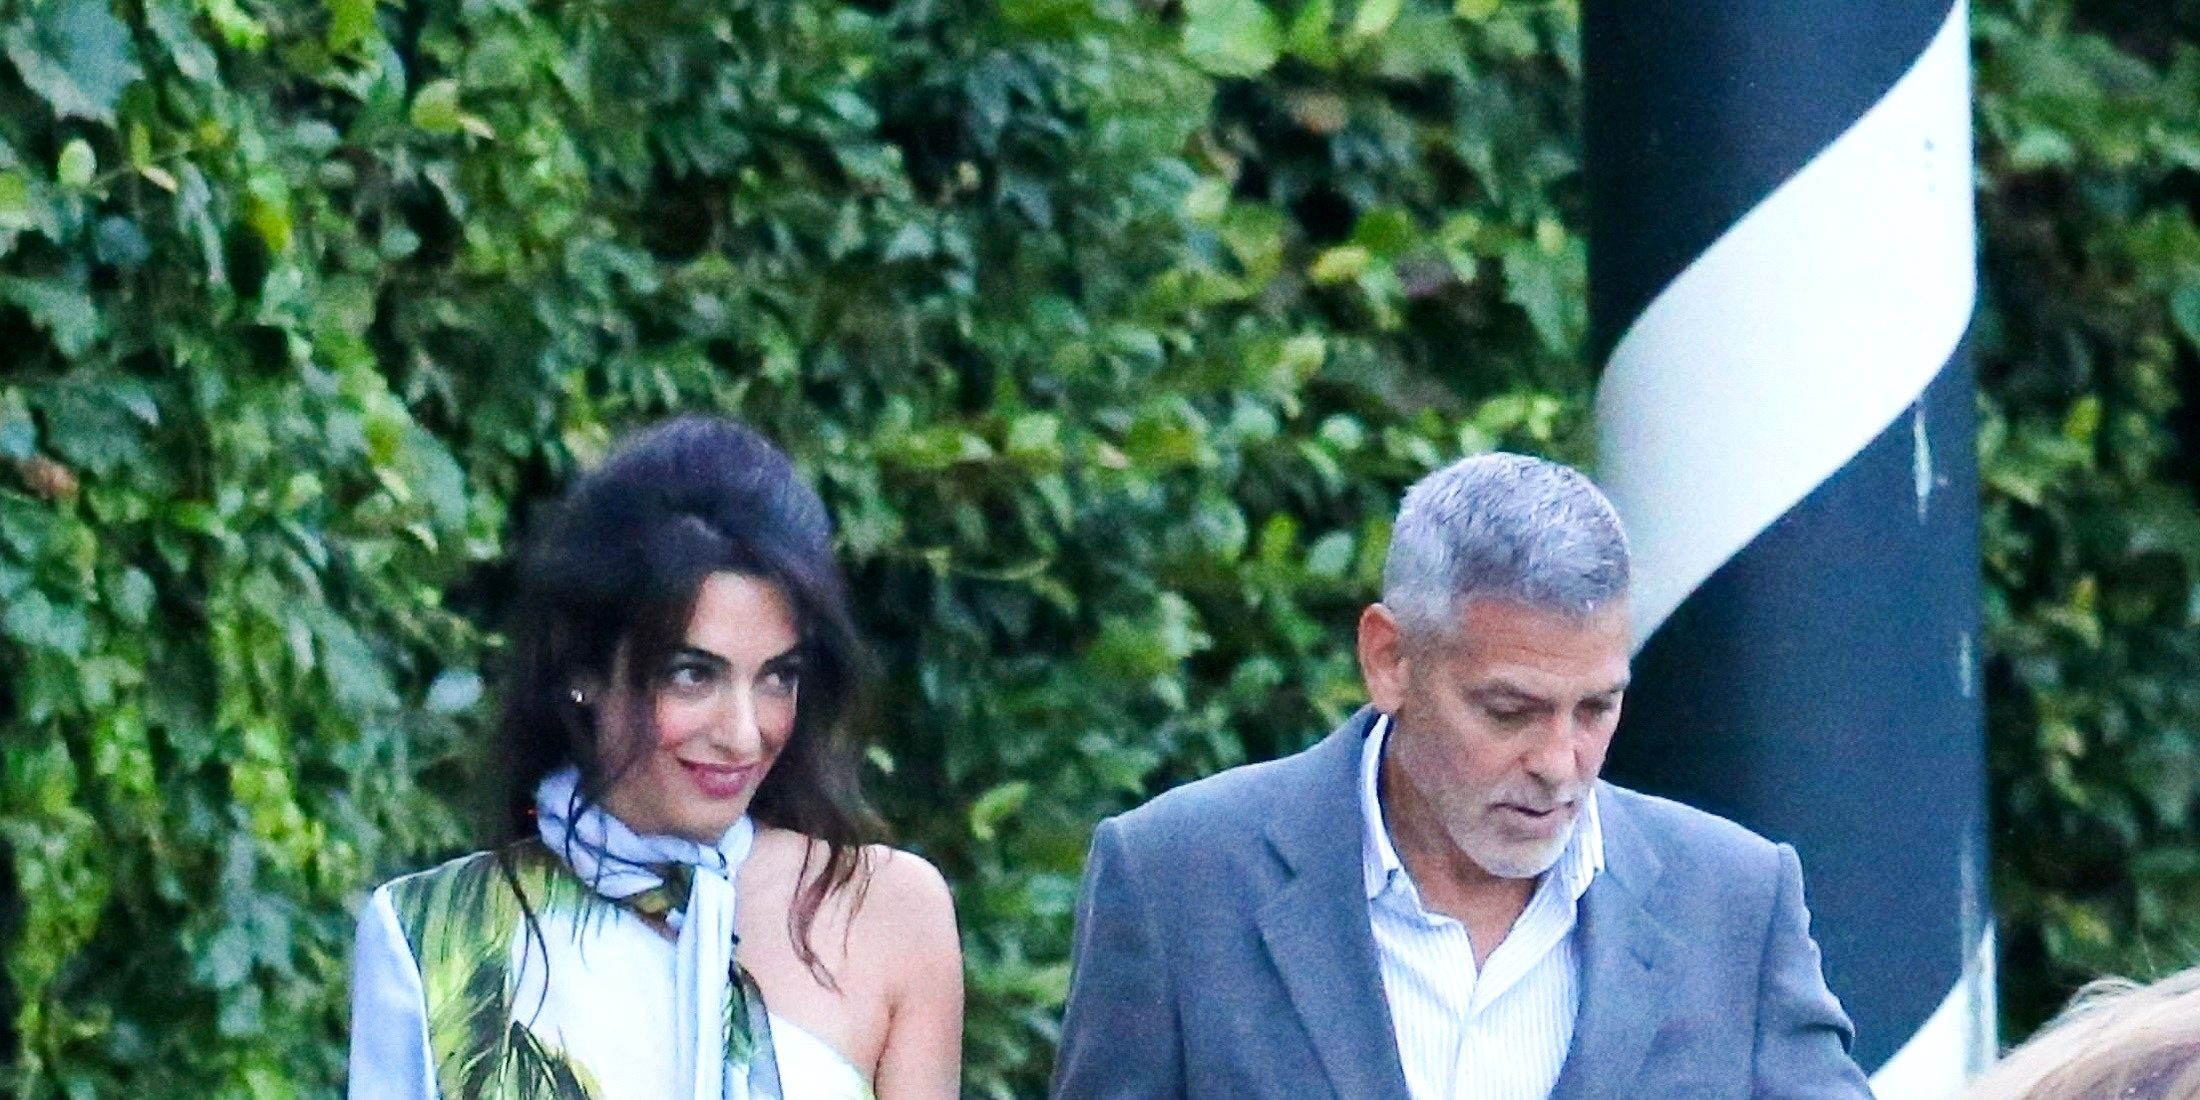 *EXCLUSIVE* George and Amal Clooney take a boat ride with friends to Villa D'Este restaurant